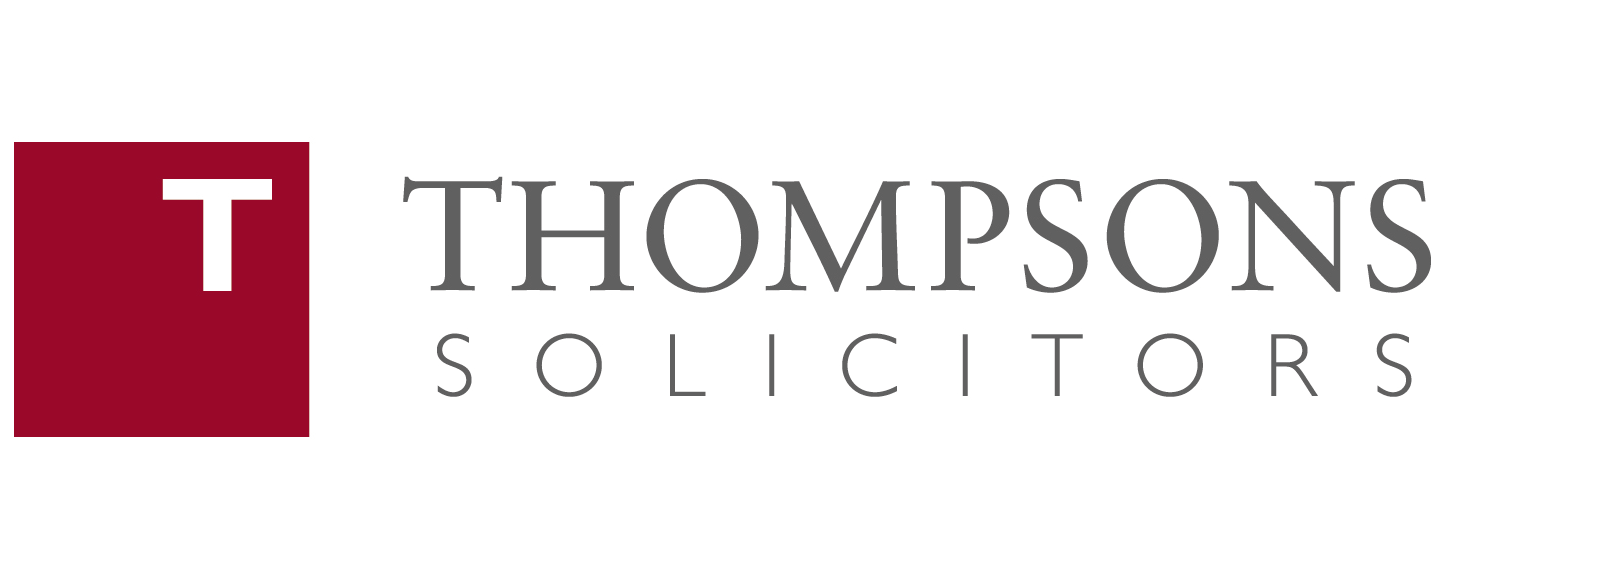 Response by Thompsons Solicitors July 2007 About Thompsons Thompsons is the UK's largest trade union and personal injury law firm.